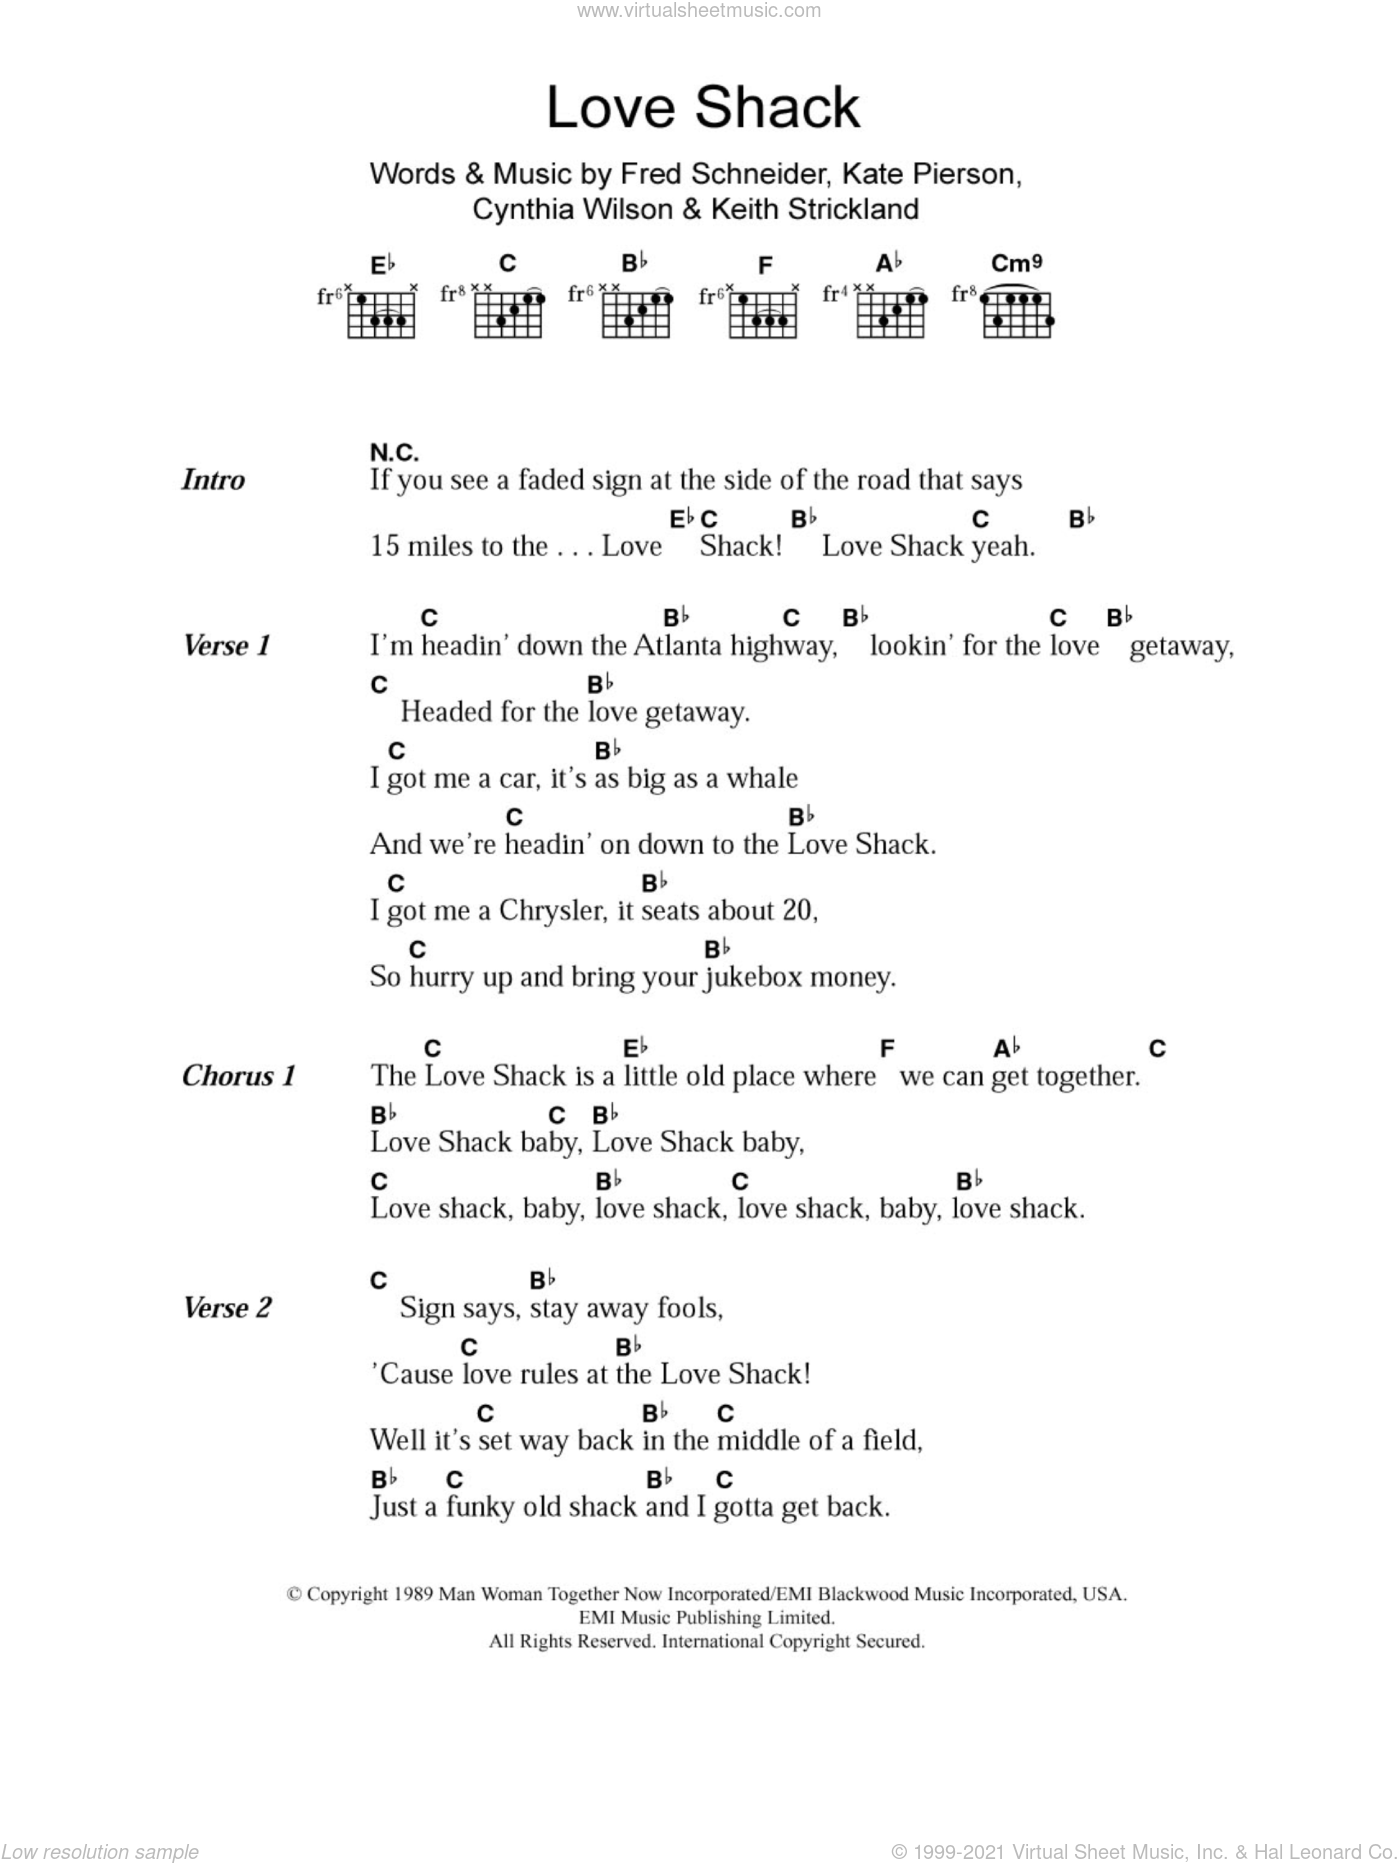 Love Shack sheet music for guitar (chords) by The B-52's. Score Image Preview.